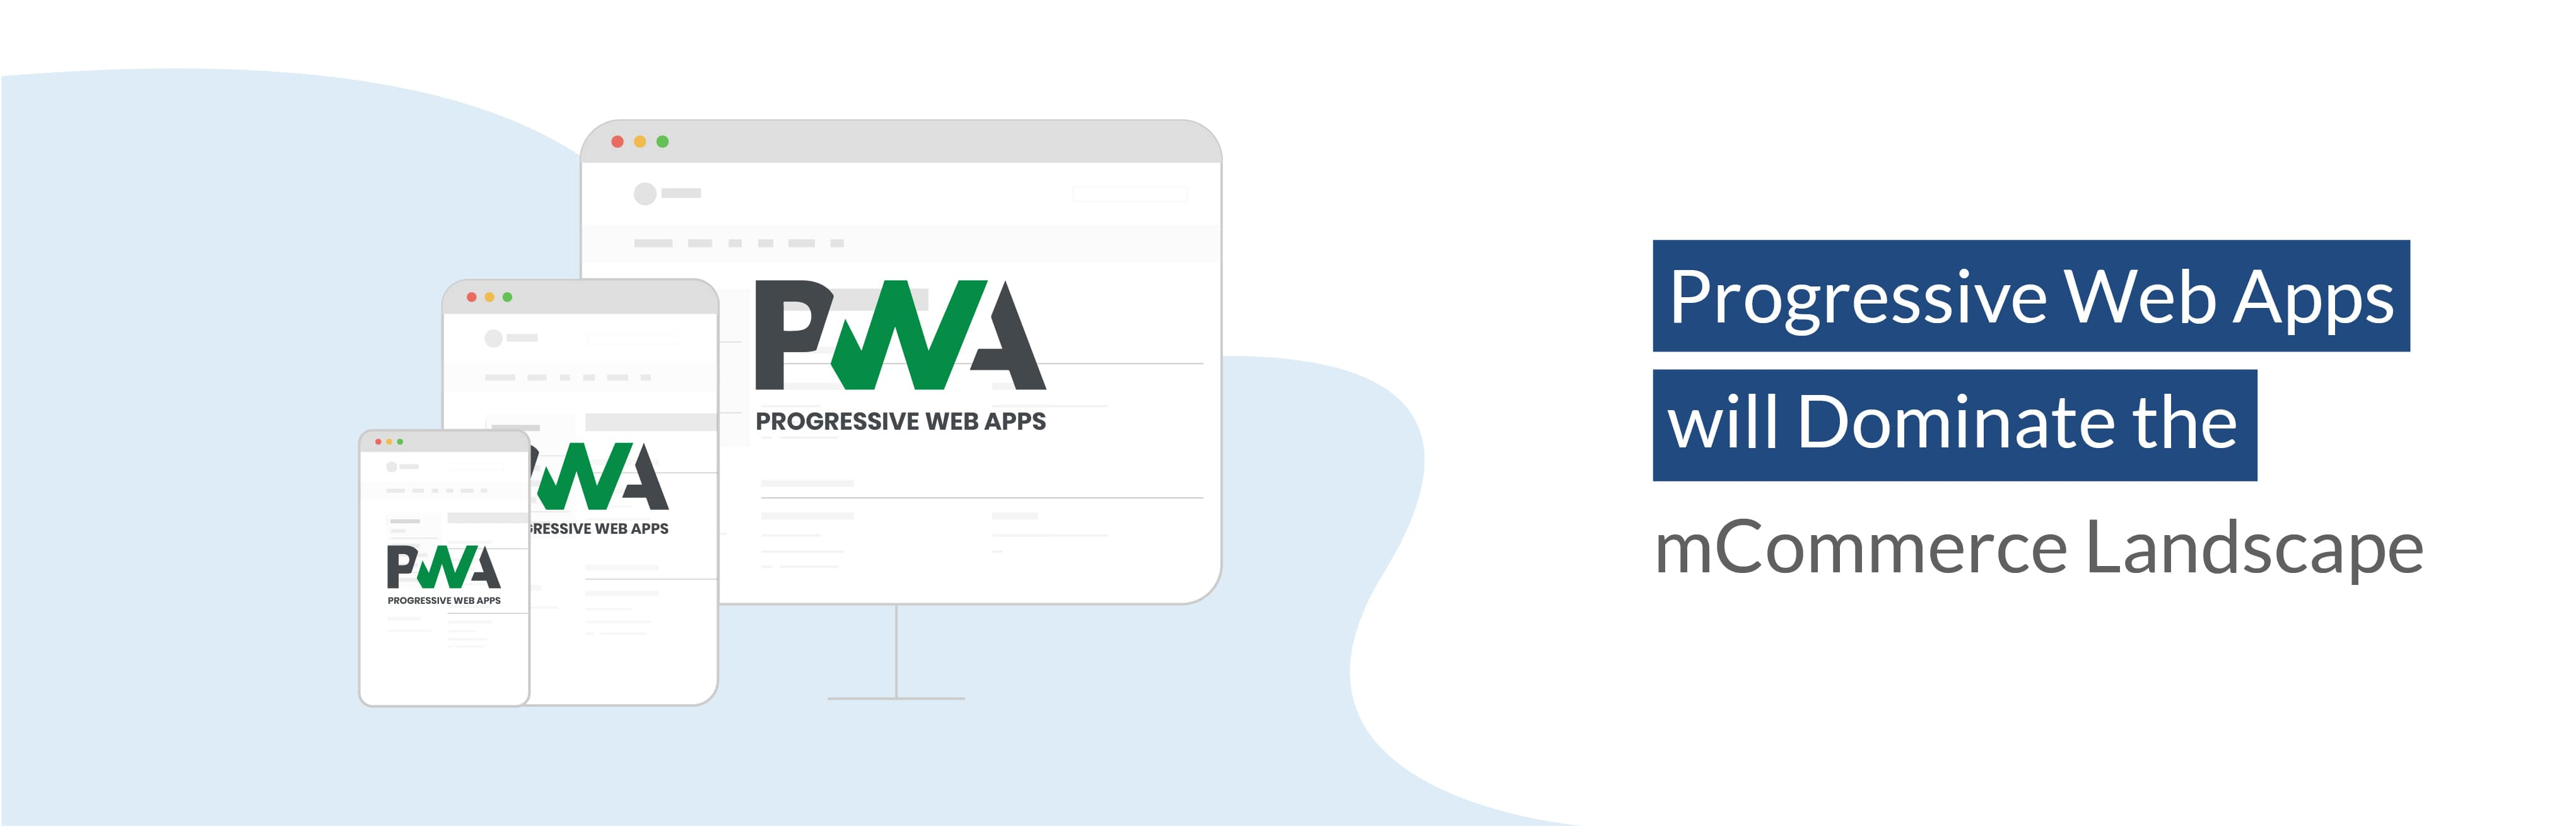 Blog Banner PWA will Dominate mCommerce Landscape